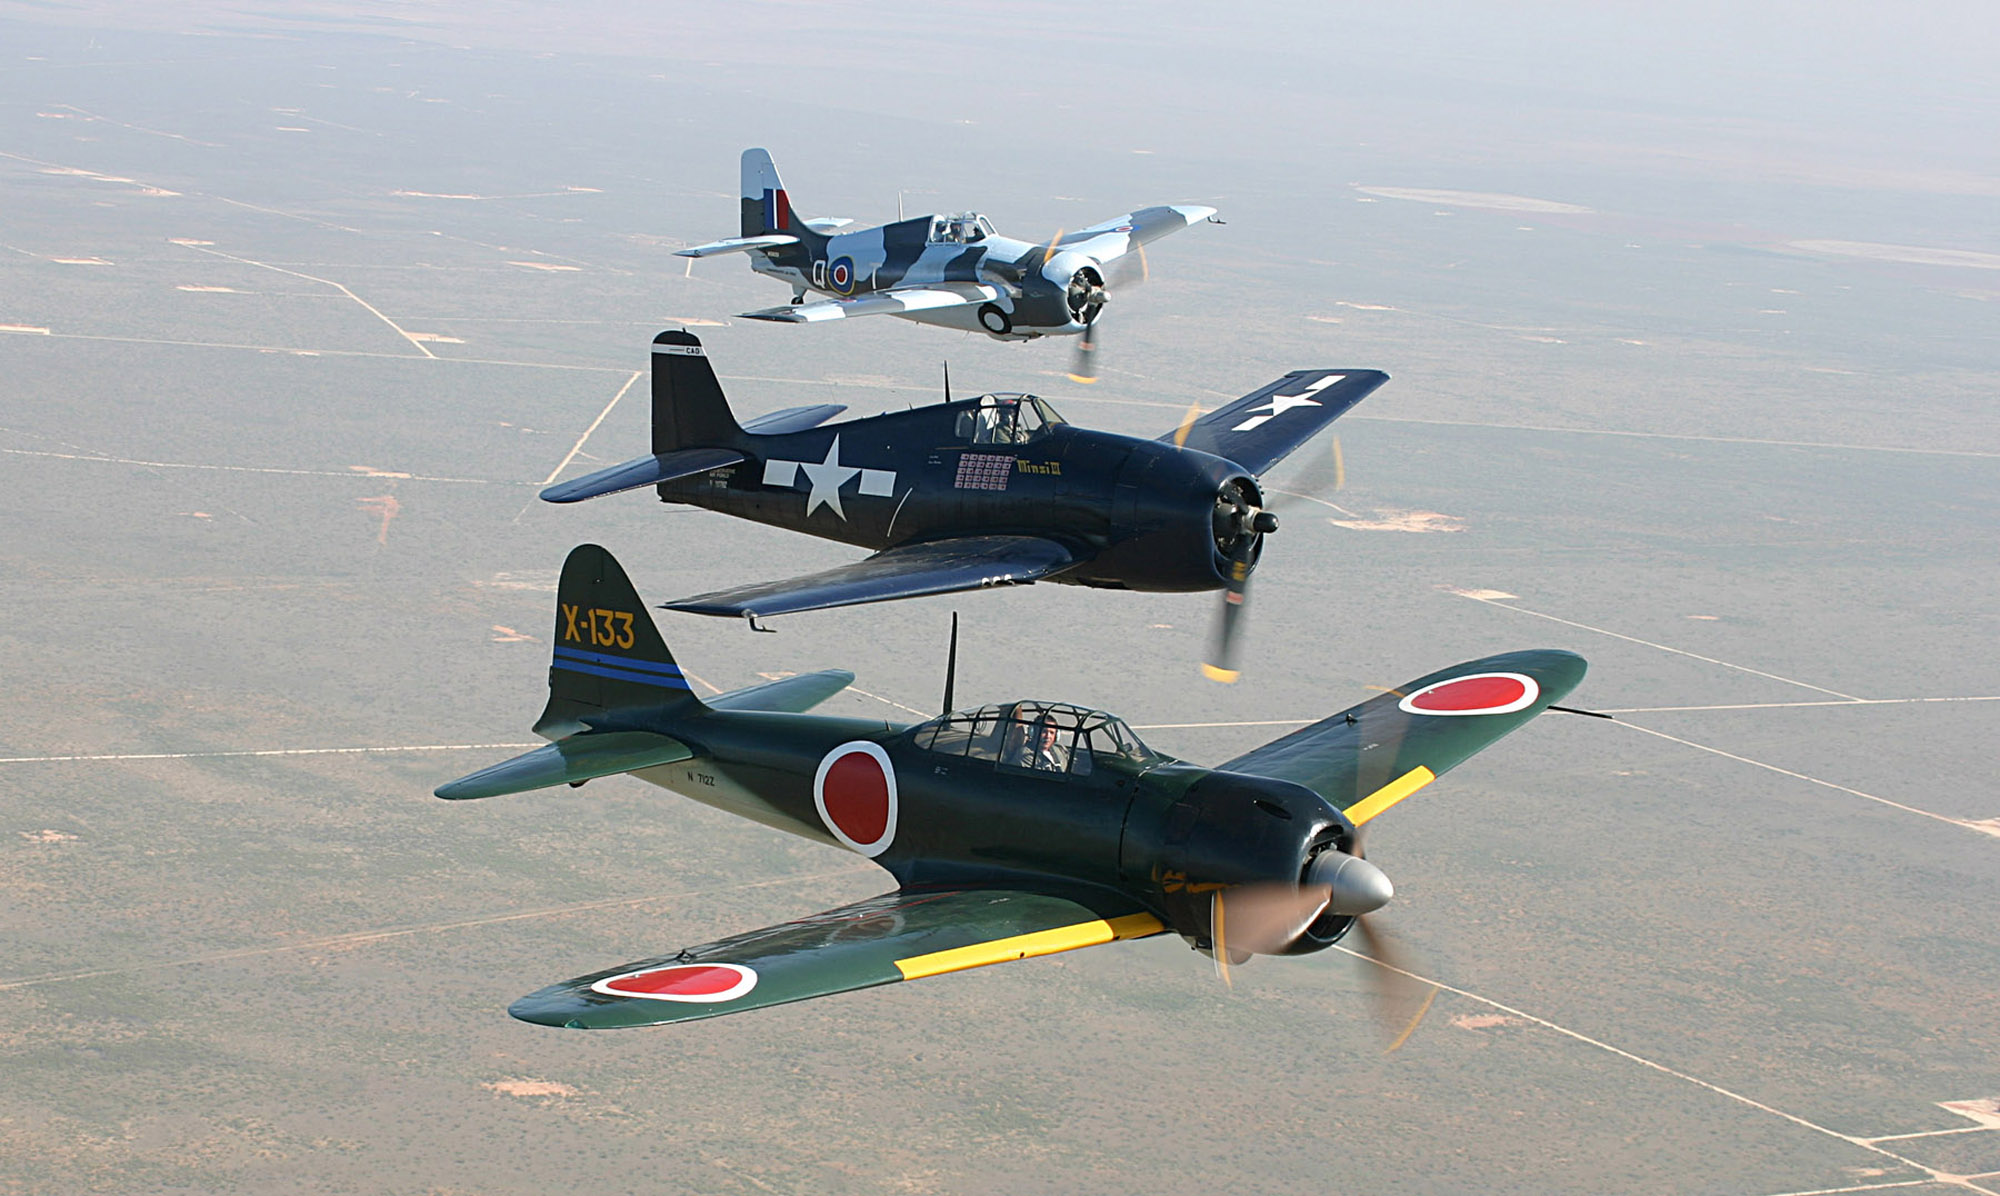 FINA-CAF AIRSHO Pays Tribute to Those Who Flew Through Hostile Skies